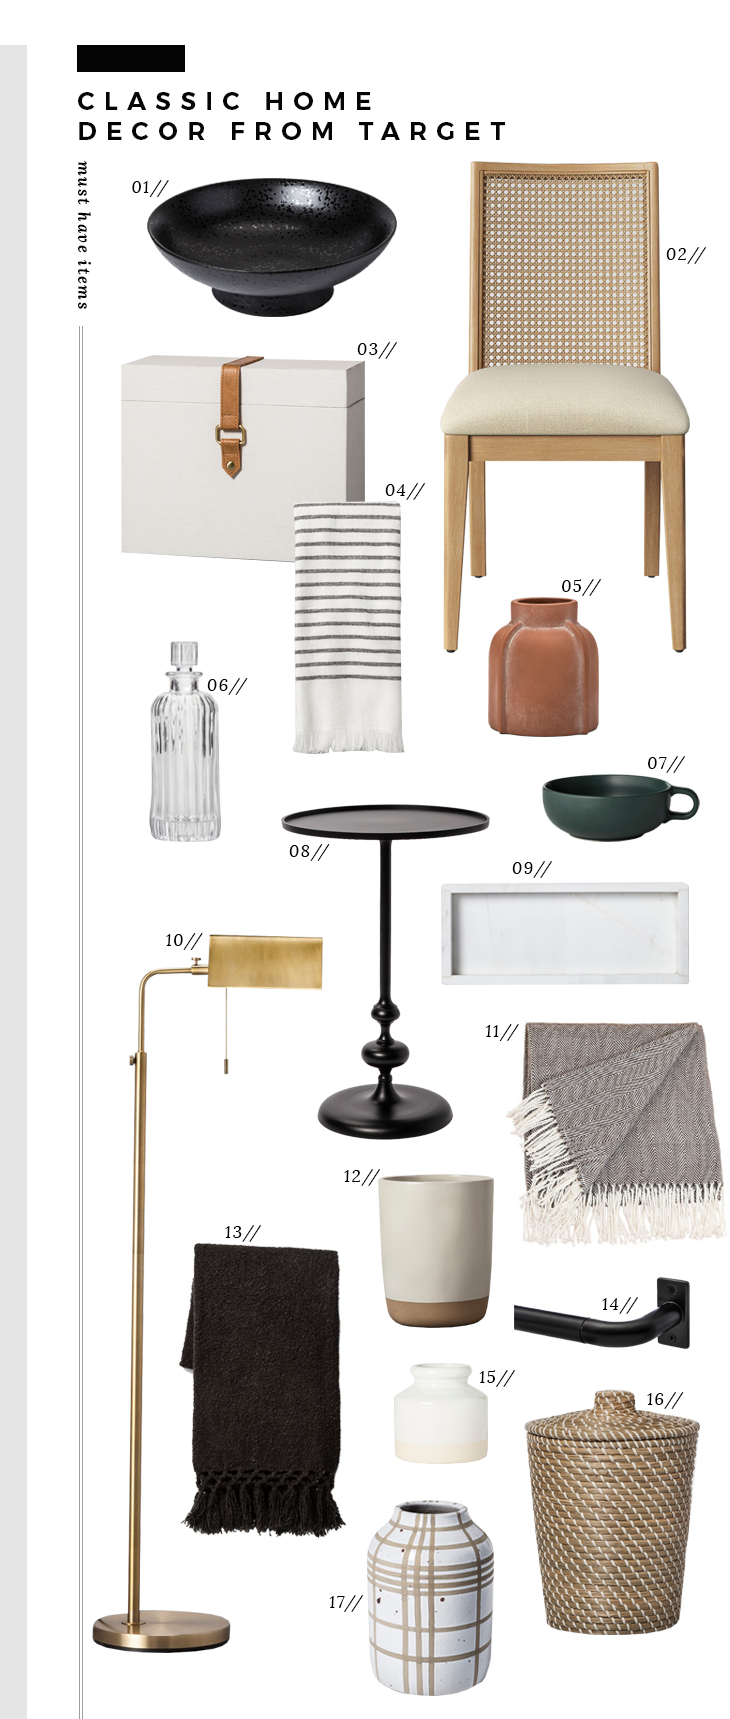 classic home decor finds from target room for tuesday img marble accent table striped towel terra cotta vase etched decanter stoneware mug turned tray brass library couch